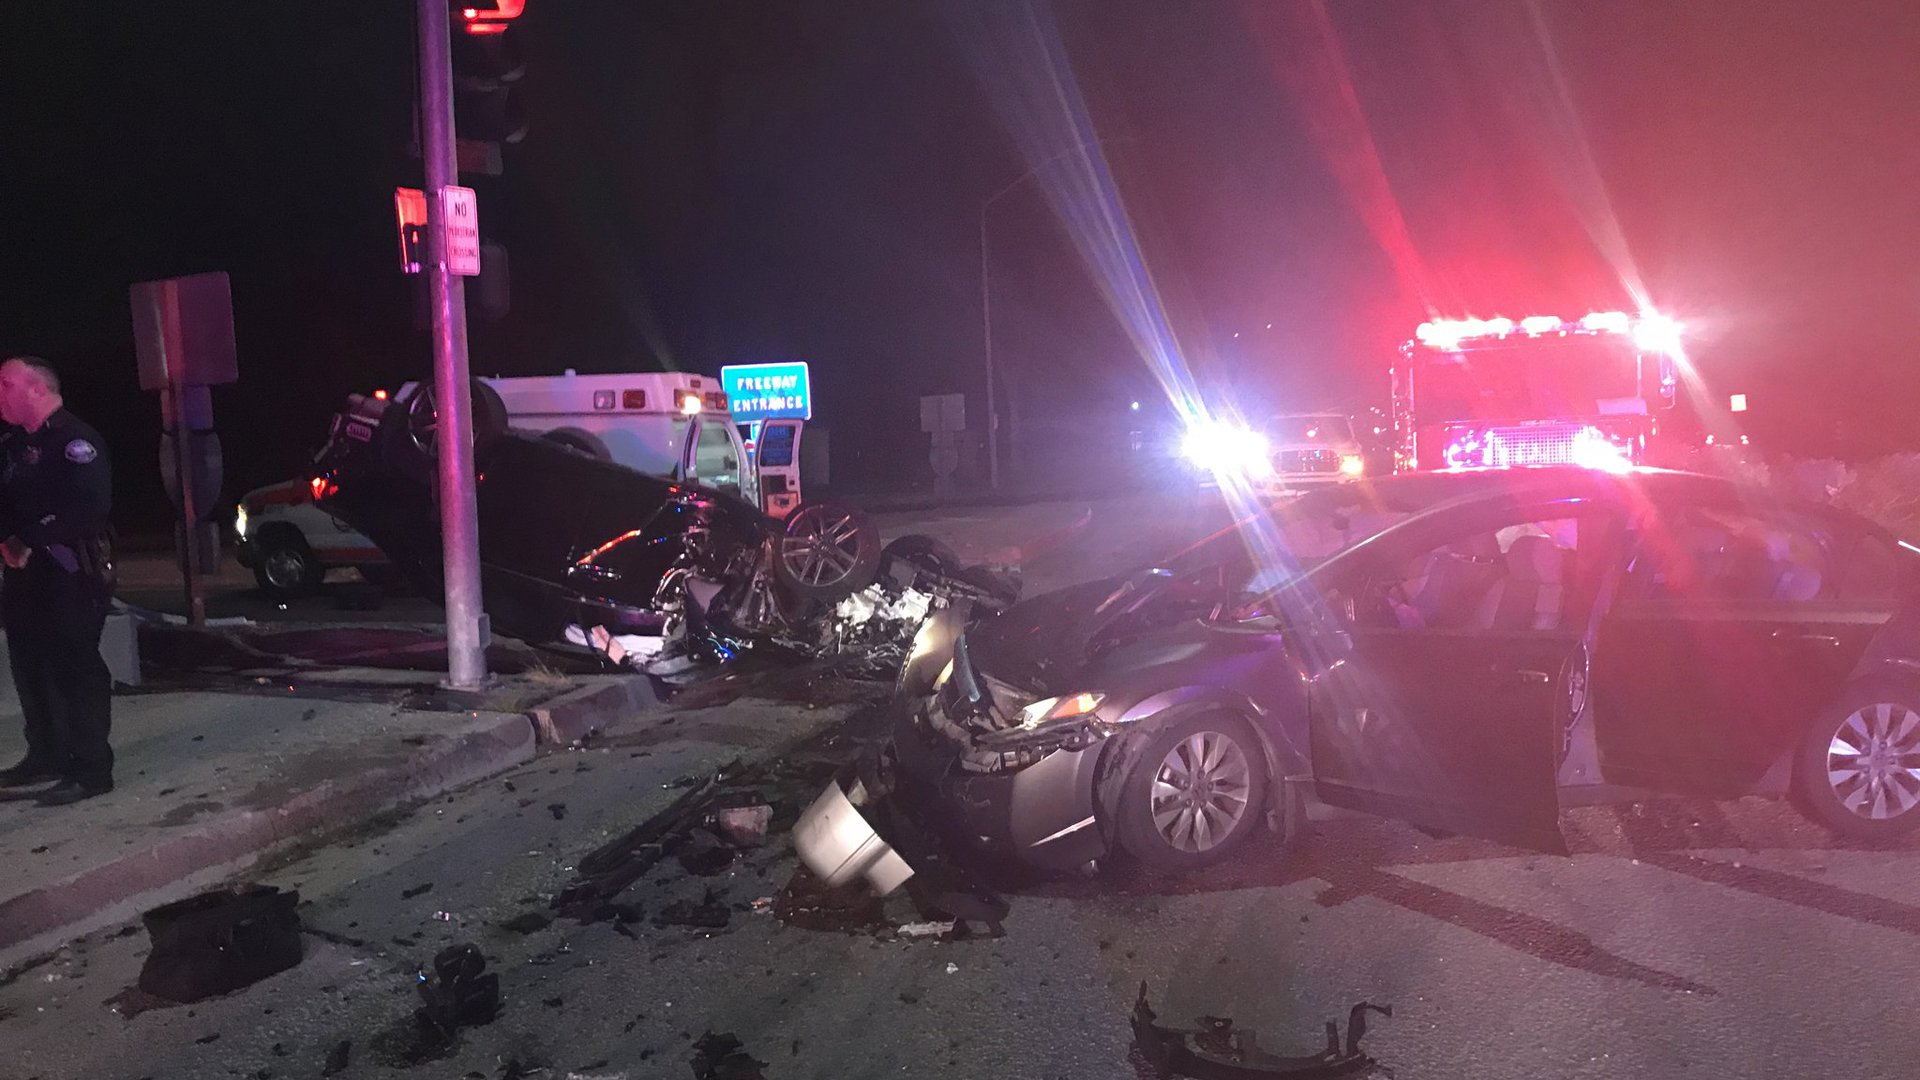 Irwindale police tweeted this photo of the crash scene on Jan. 20, 2020.